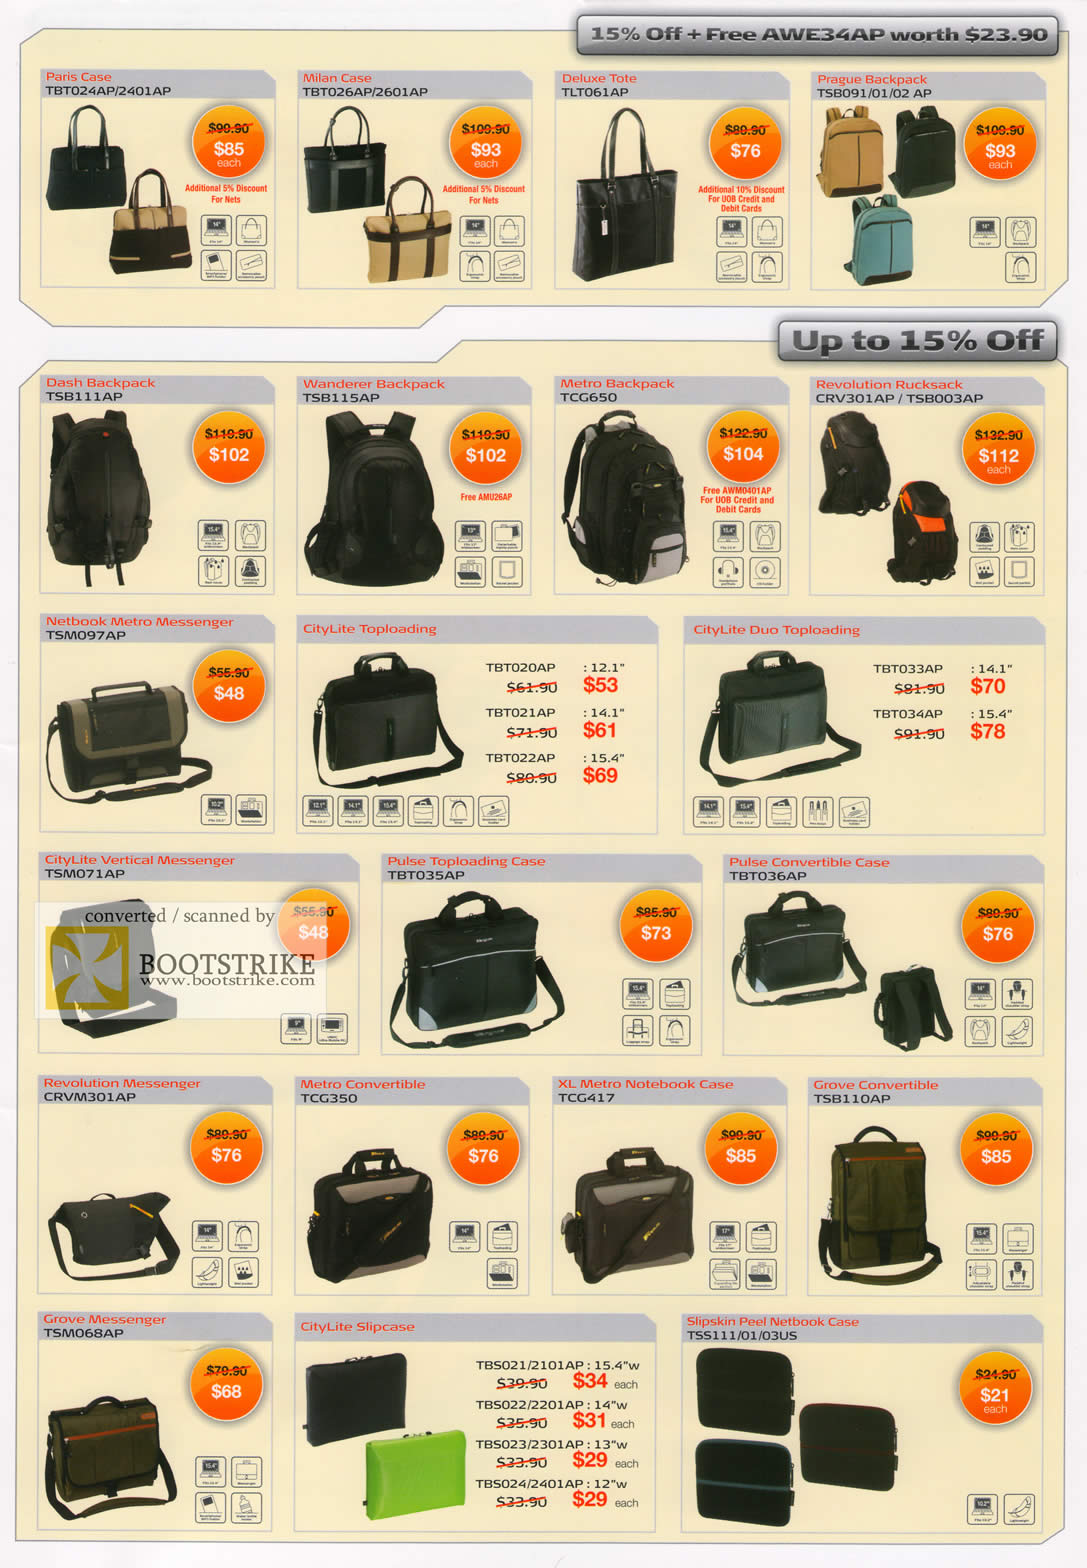 Comex 2009 price list image brochure of Targus Case Tote Backpack Rucksack Netbook Slipcase